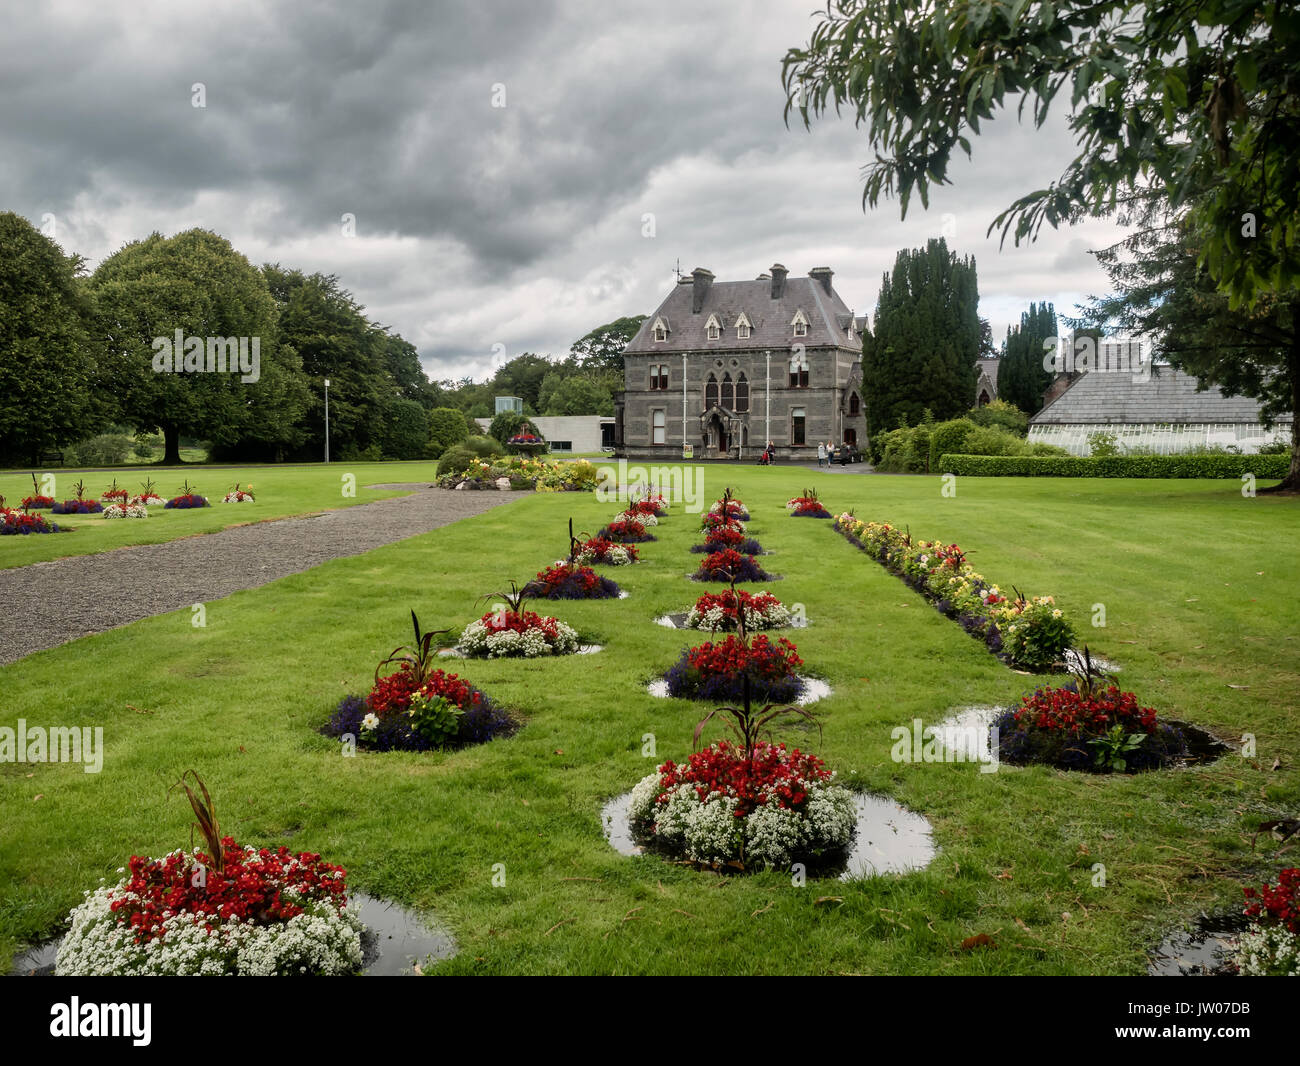 Countrylife Museum In Castlebar County Mayo In Ireland   Stock Image